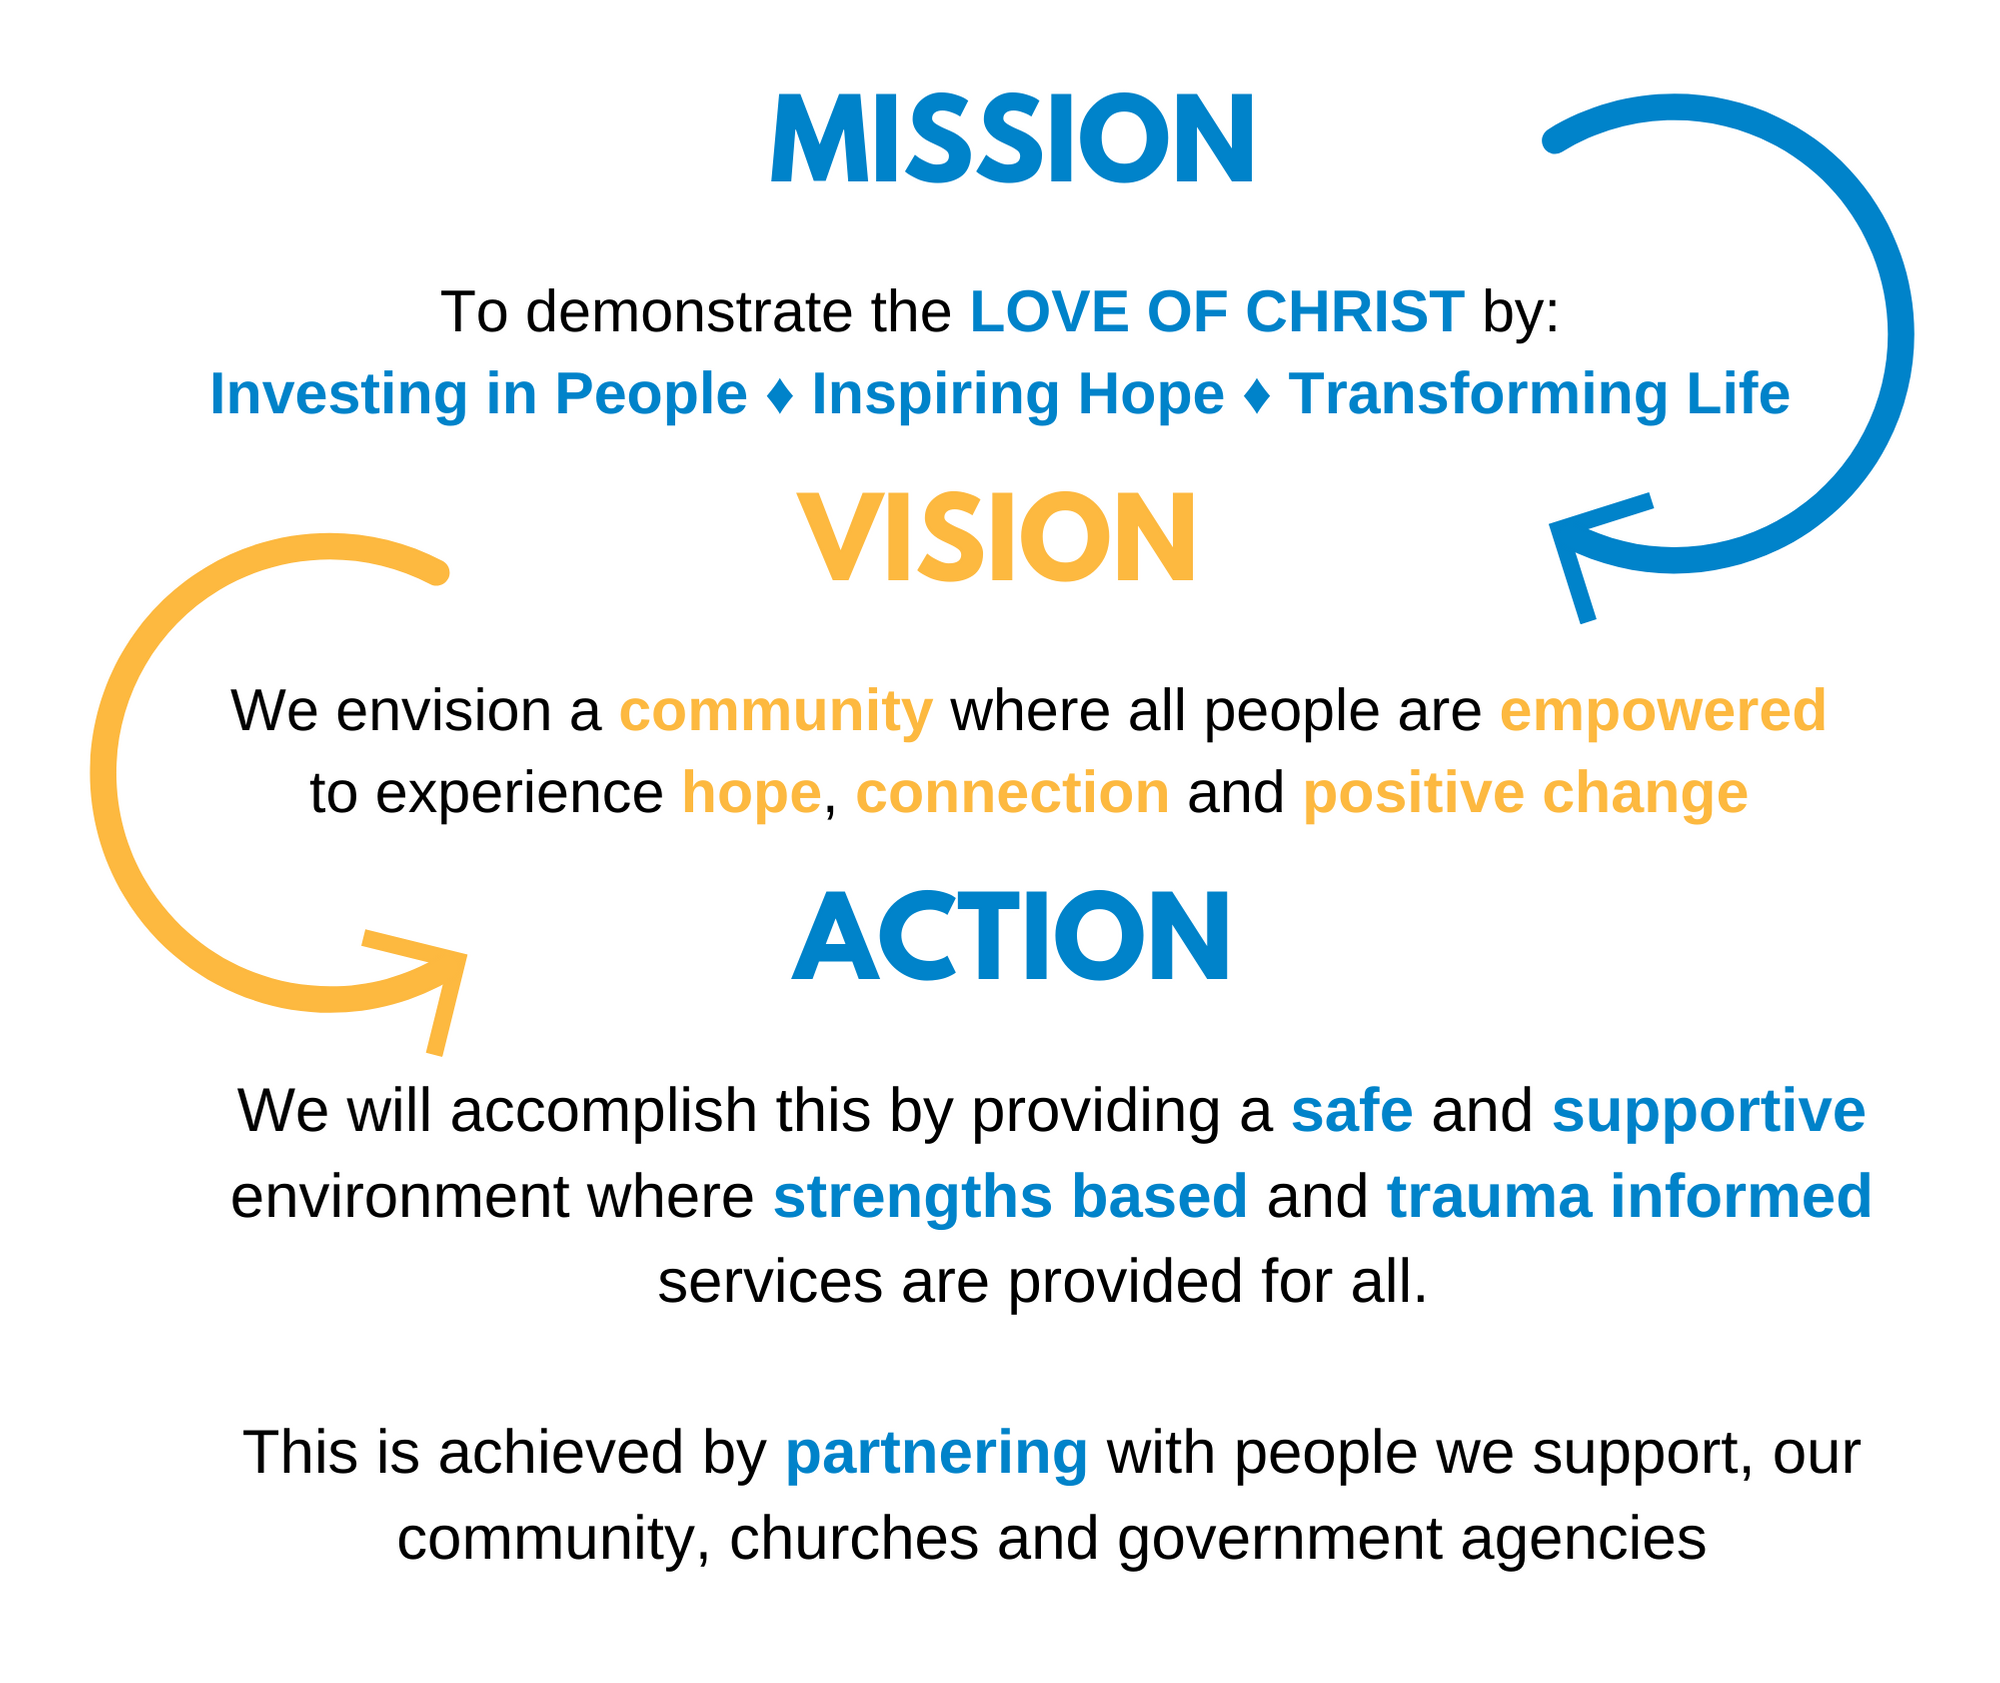 """Graphic containing Ray of Hope's mission statement - there are three distinct headings reading, """"Mission: To demonstrate the LOVE OF CHRIST by: Investing in People, Inspiring Hope, Transforming Life"""", """"Vision: We envision a community where all people are empowered to experience hope, connection and positive change"""" and """"Action: We will accomplish this by providing a safe and supportive environment where strengths based and trauma informed services are provided for all. This is achieved by partnering with people we support, our community, churches and government agencies"""", with curved arrows between each heading."""